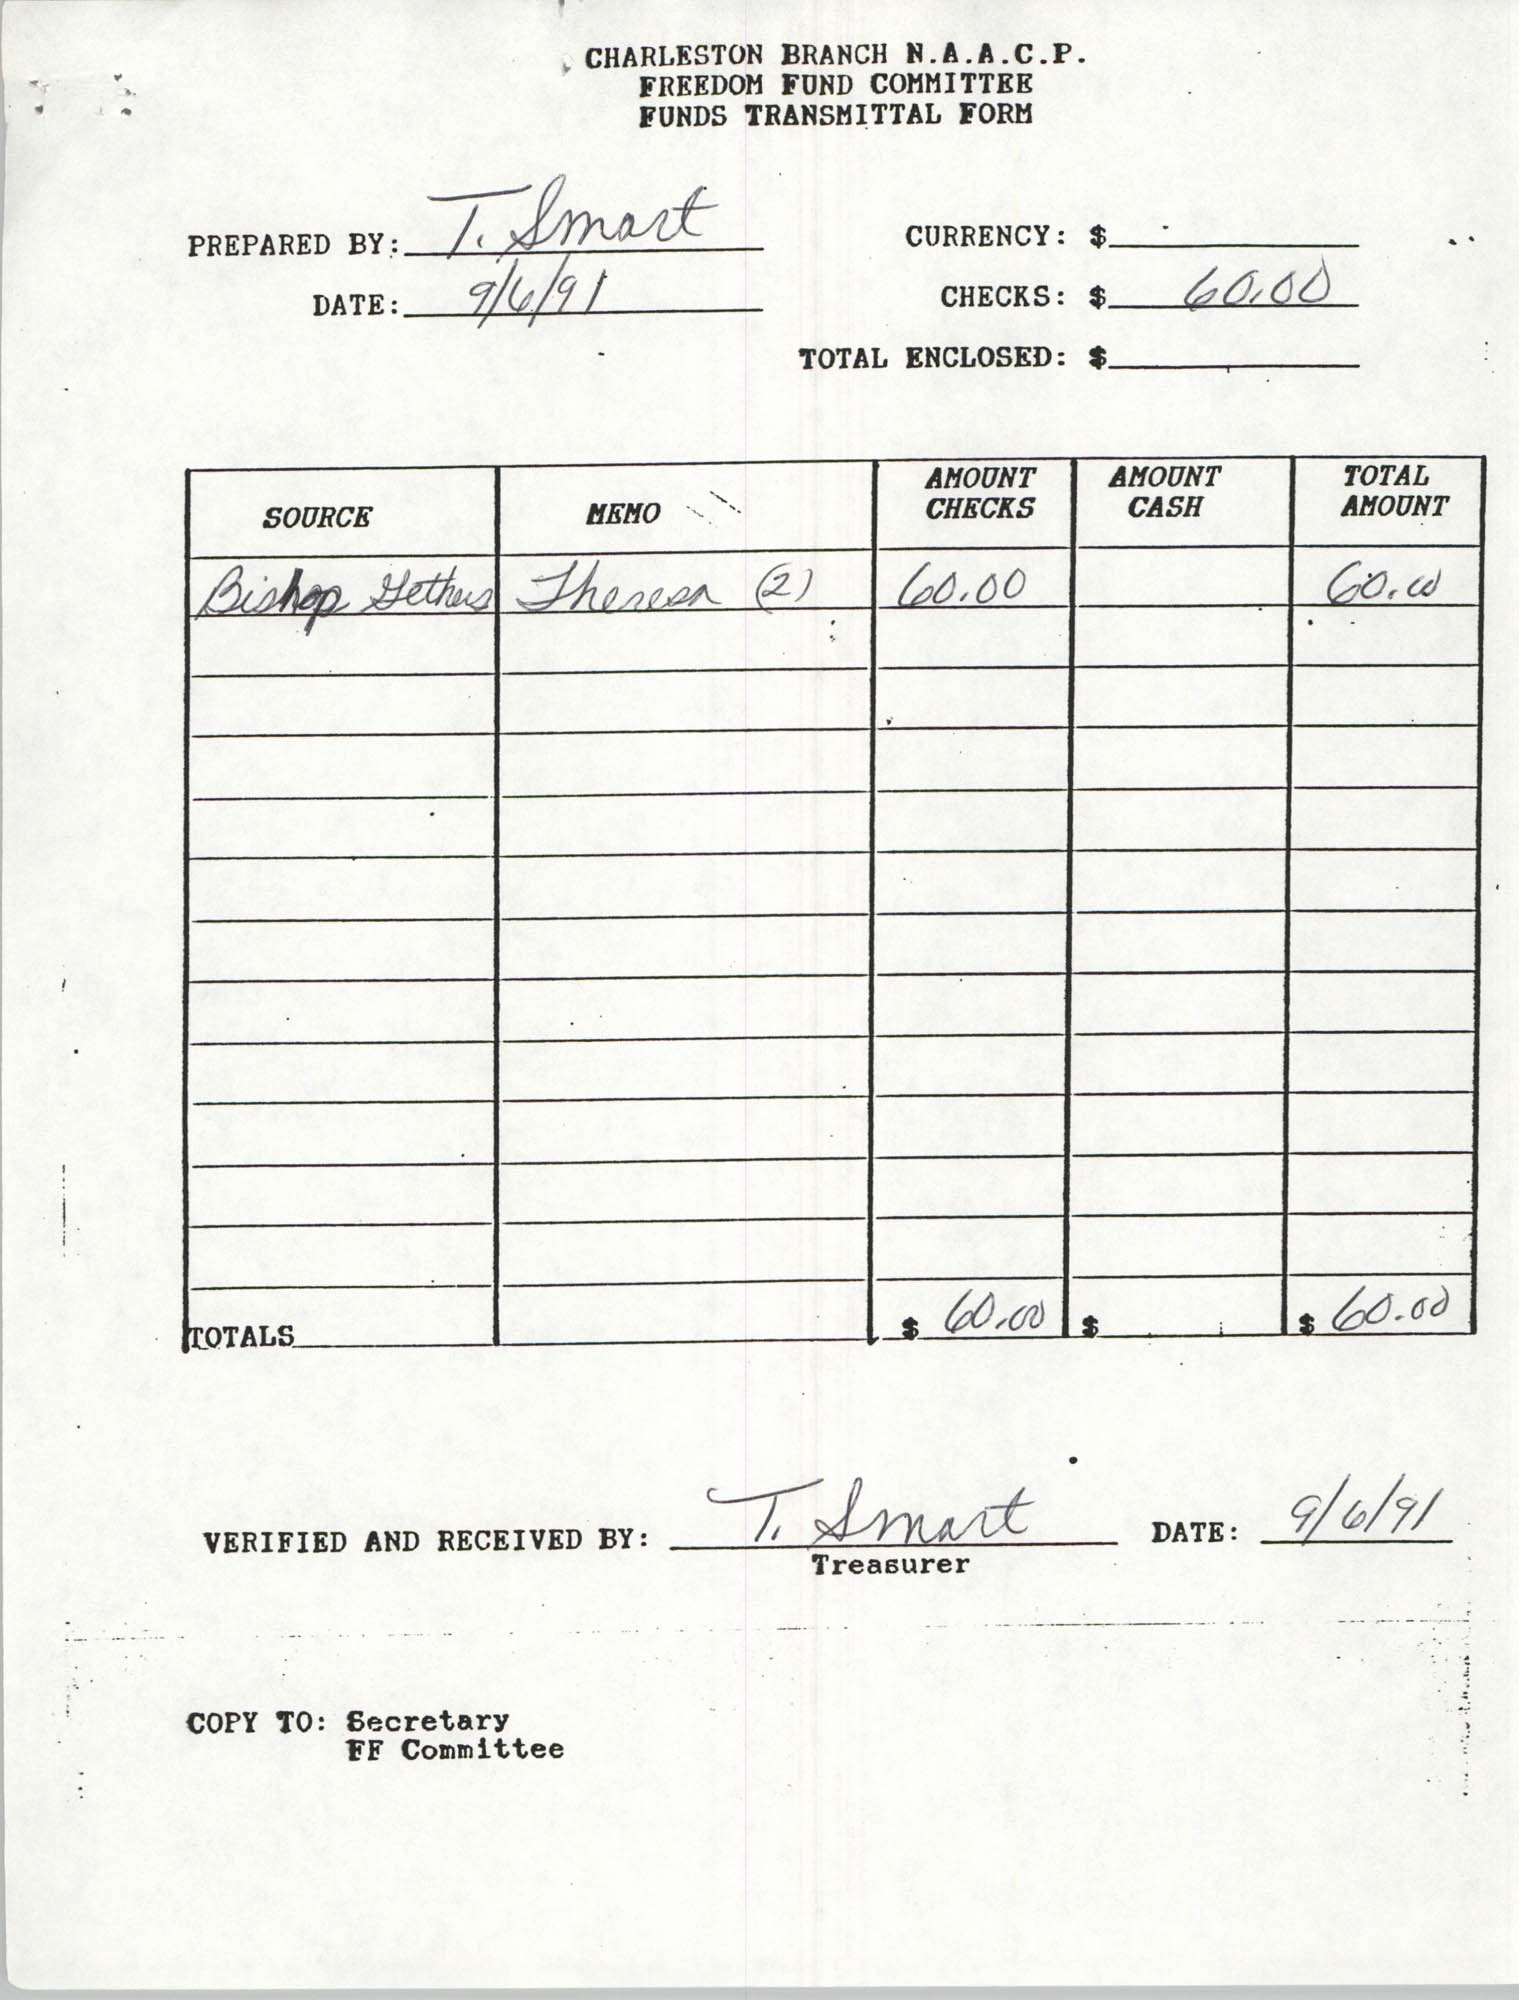 Charleston Branch of the NAACP Funds Transmittal Forms, September 1991, Page 30